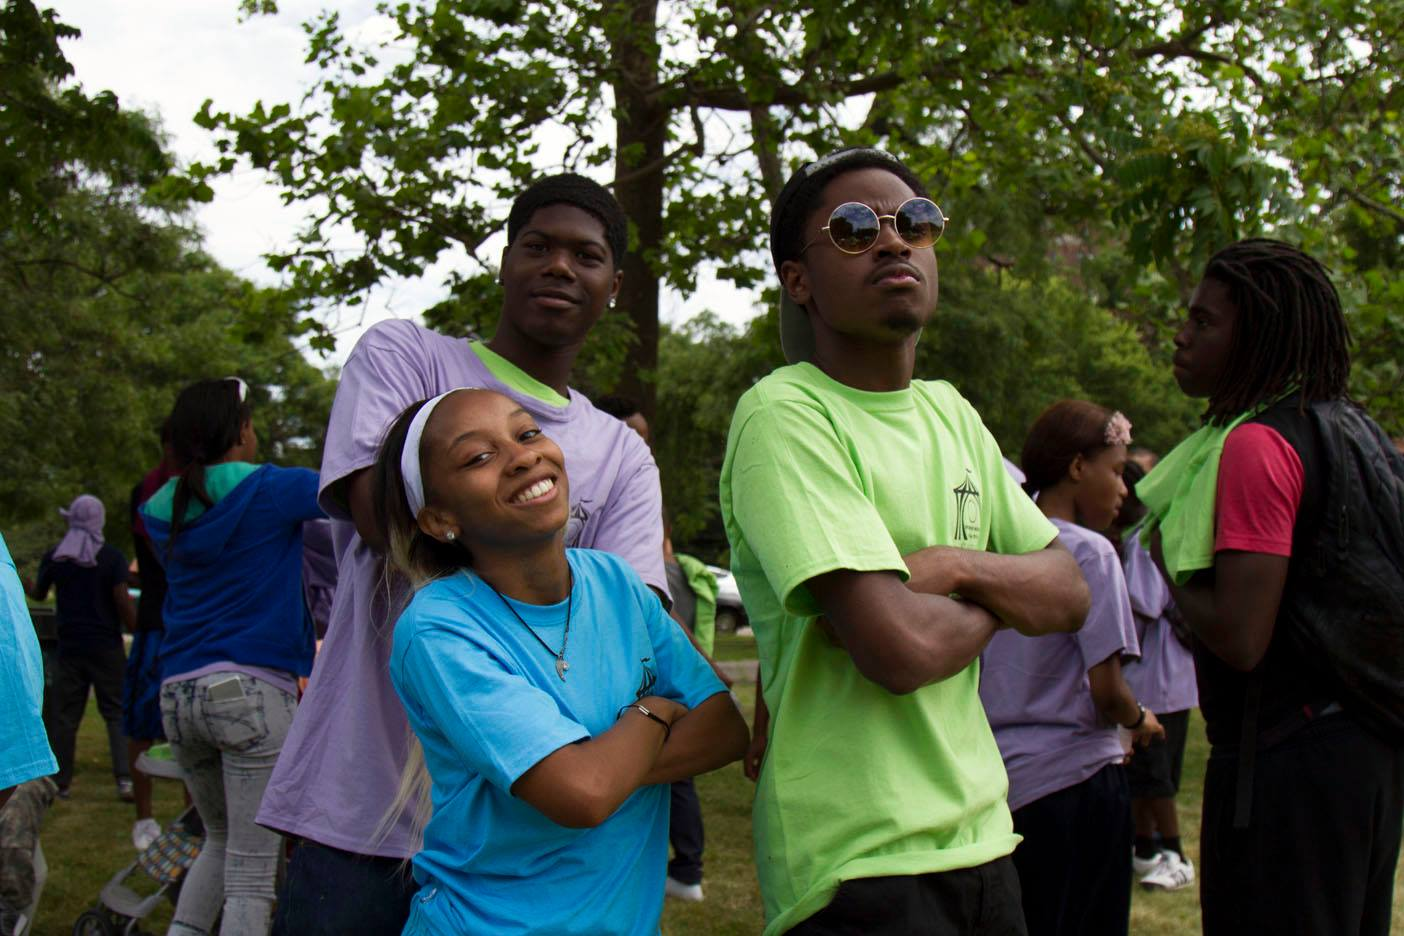 MID-SUMMER FUN FEST - Every year, our participants, alum, and staff unite to celebrate our summer program sessions.